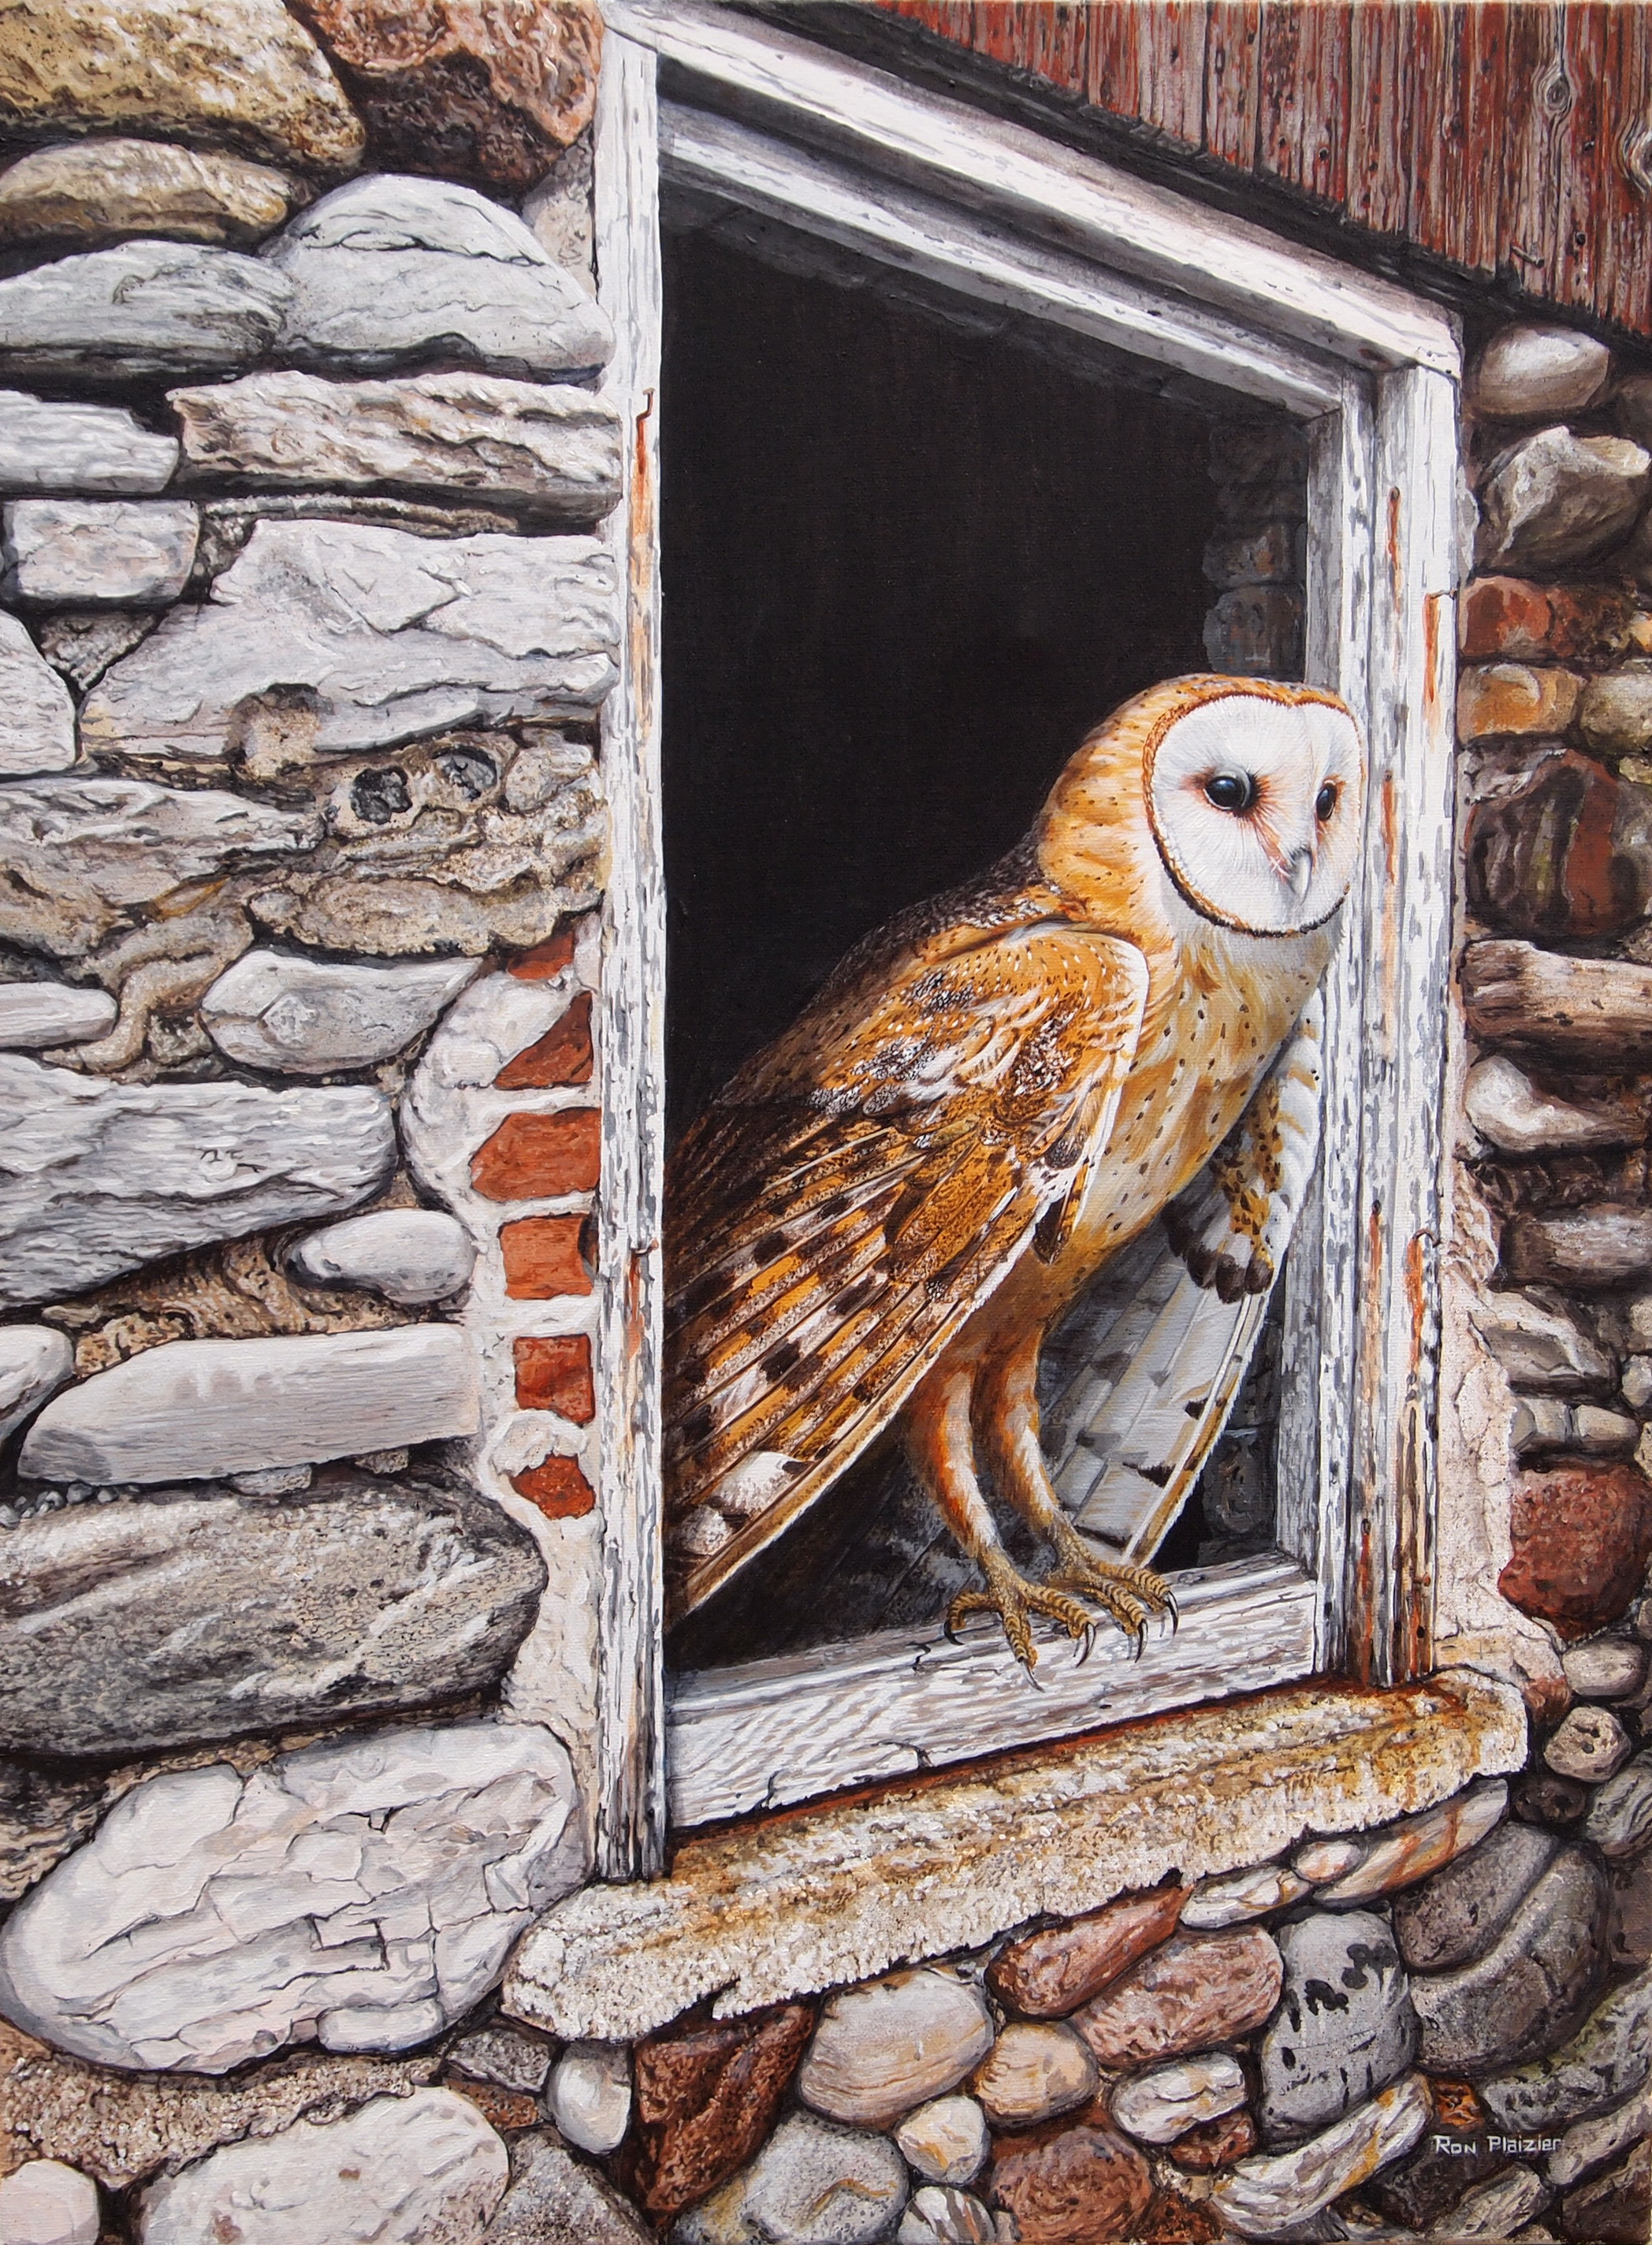 Ron Plaizier - Barn Owl